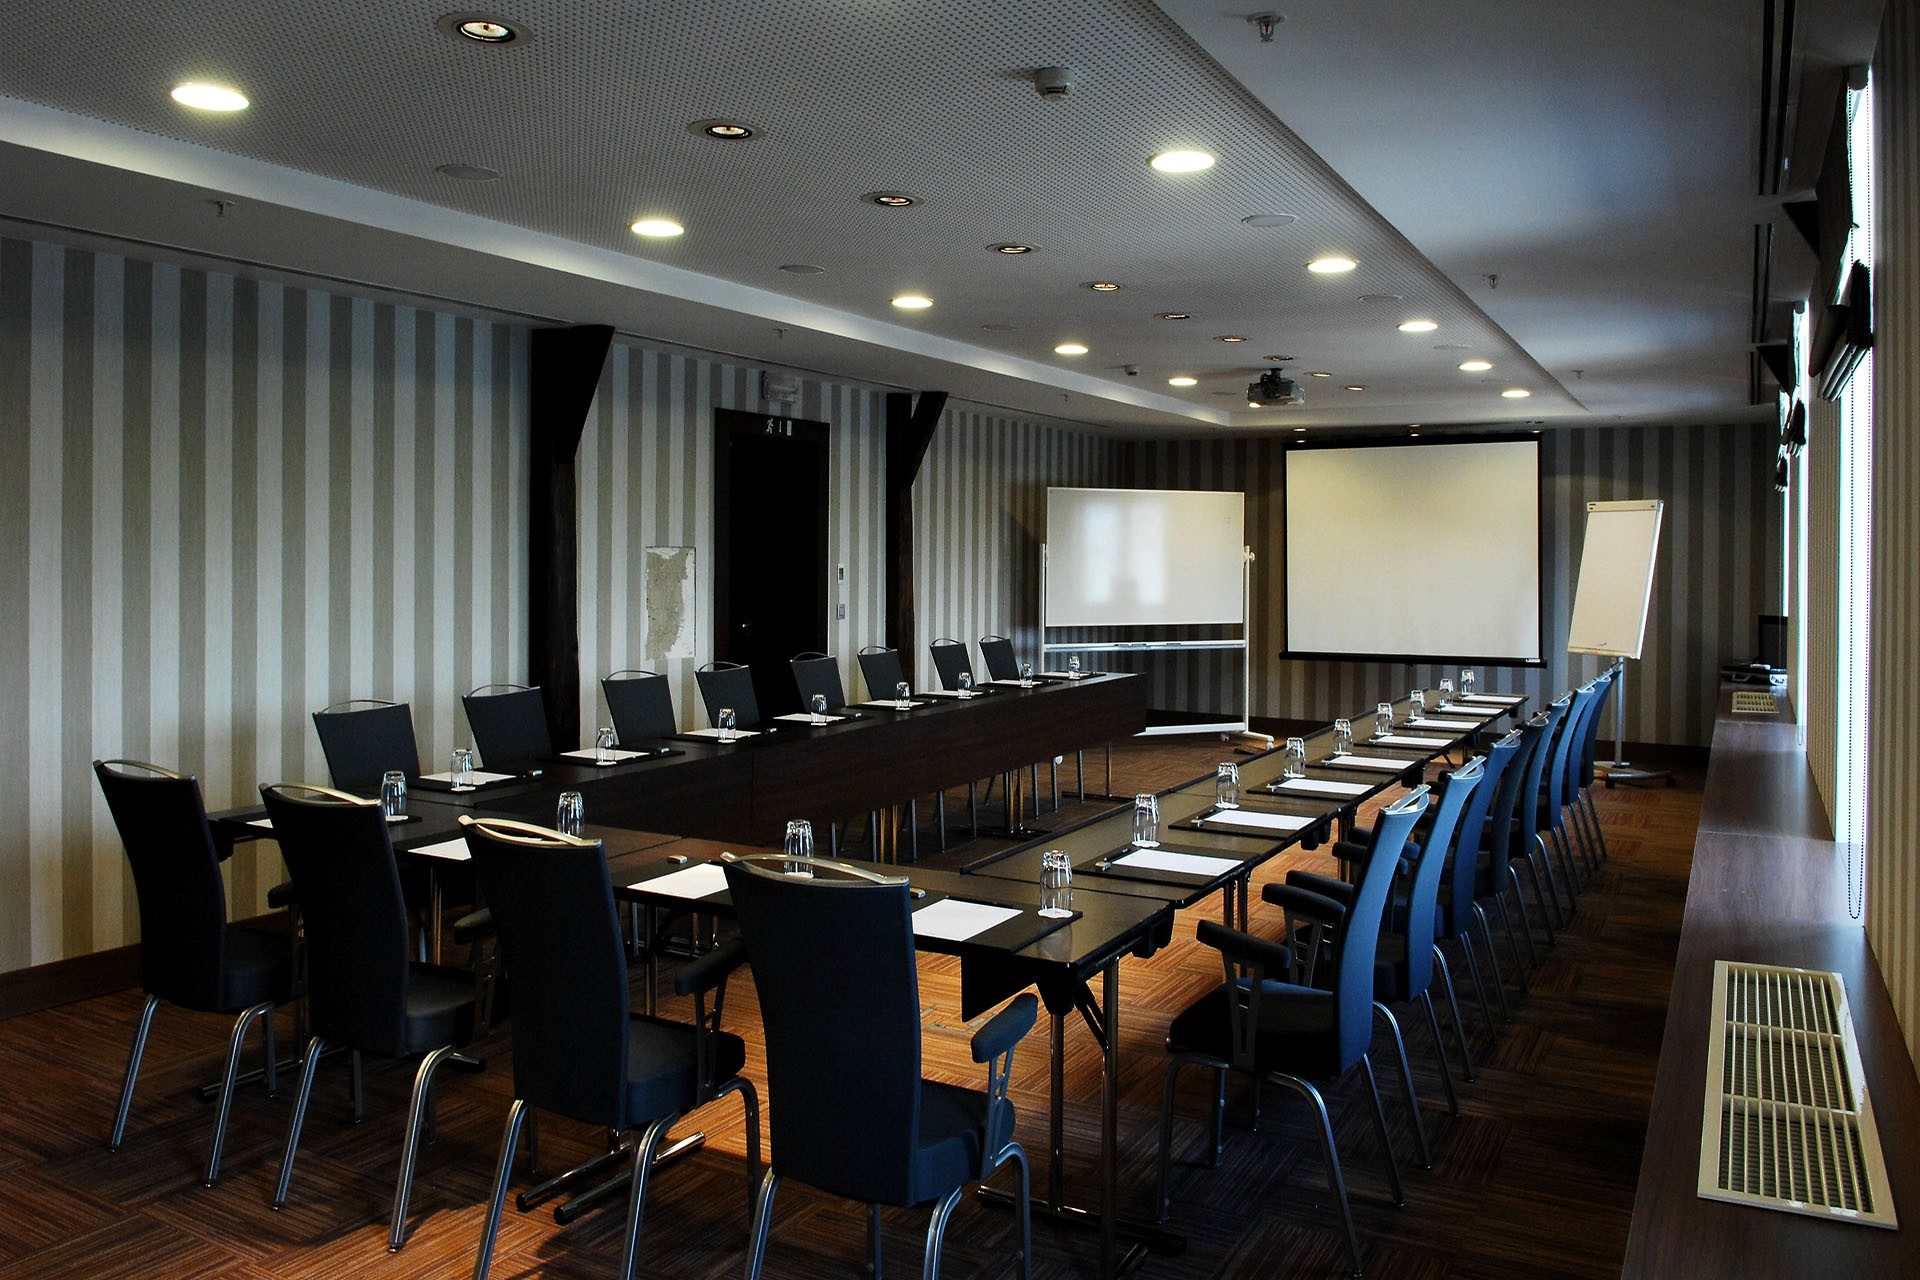 Van der Valk Hotel Sélys - Gretry Meeting Room